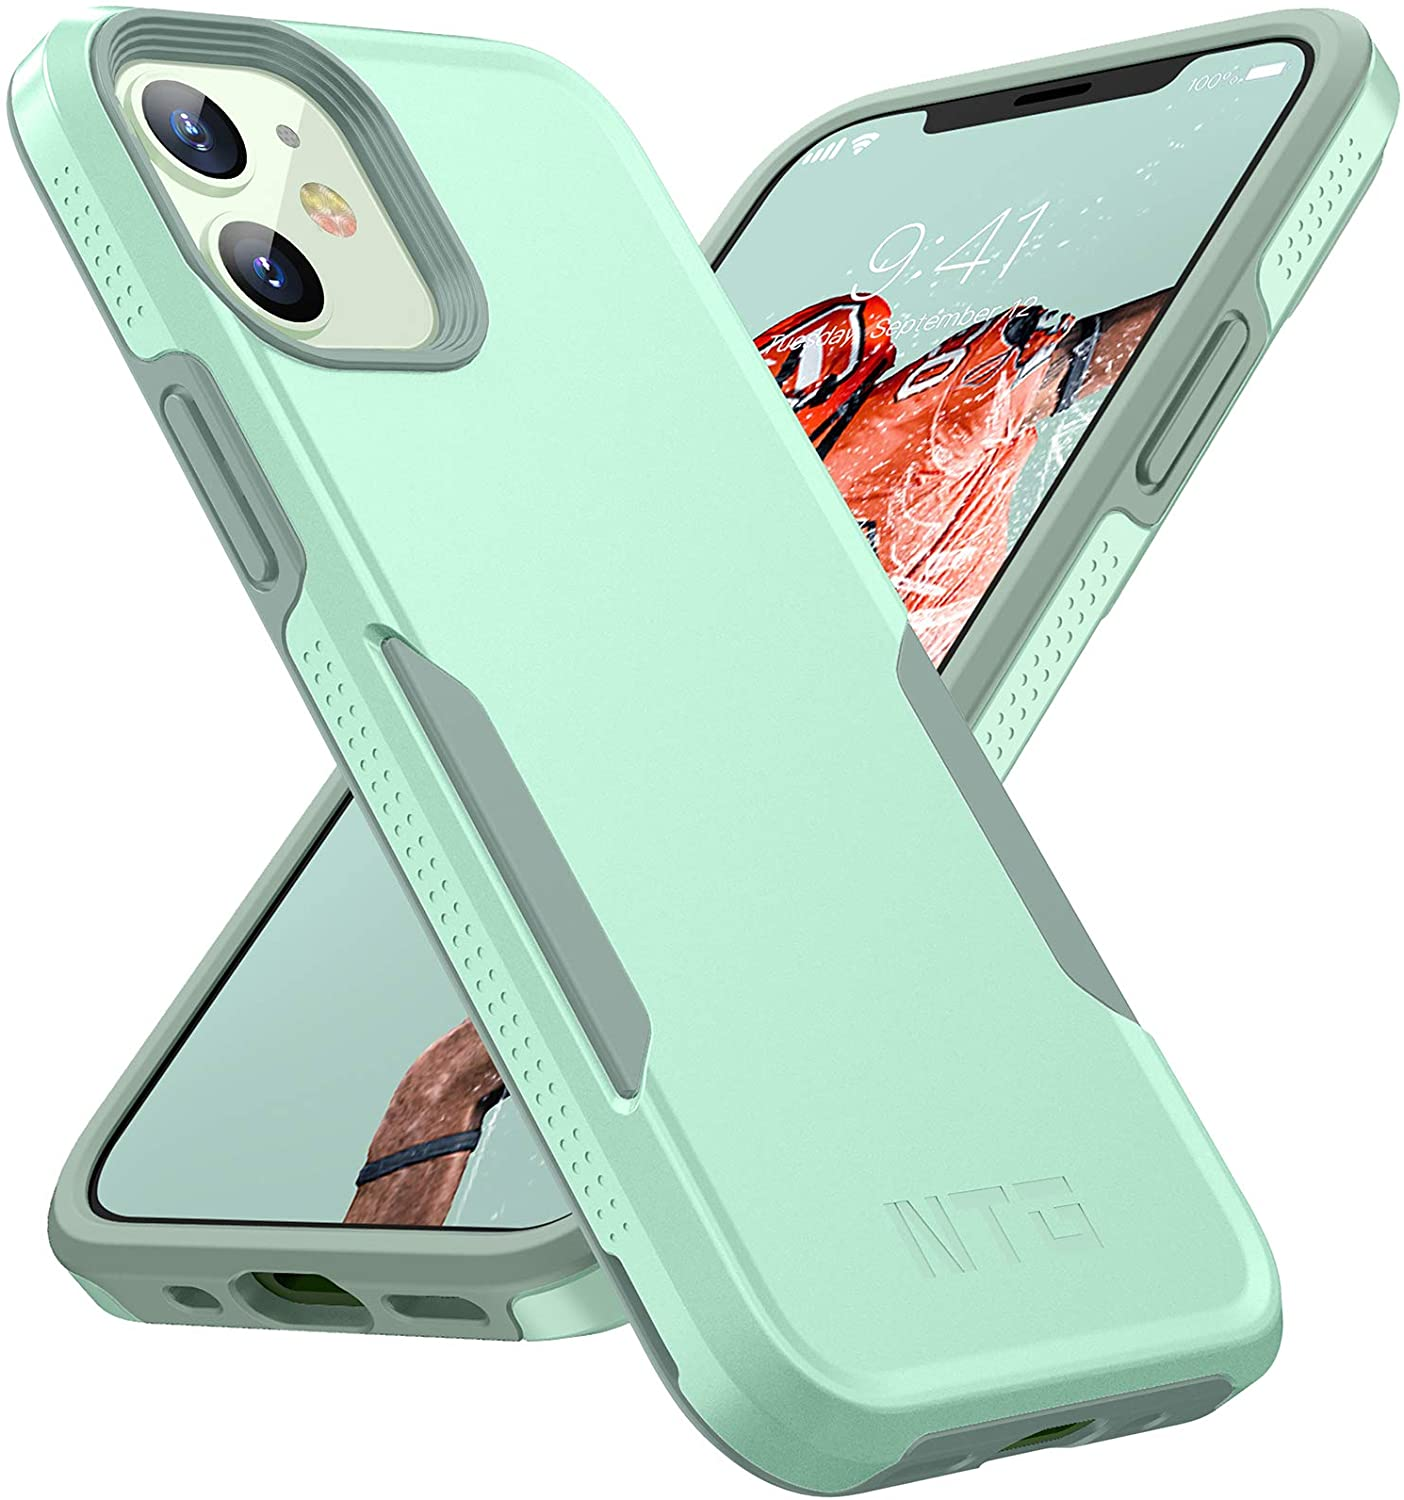 NTG [1st Generation] Designed for iPhone 12 Case & iPhone 12 Pro Case, Heavy-Duty Tough Rugged Lightweight Slim Shockproof Protective Case for iPhone 12 6.1 Inch, Green